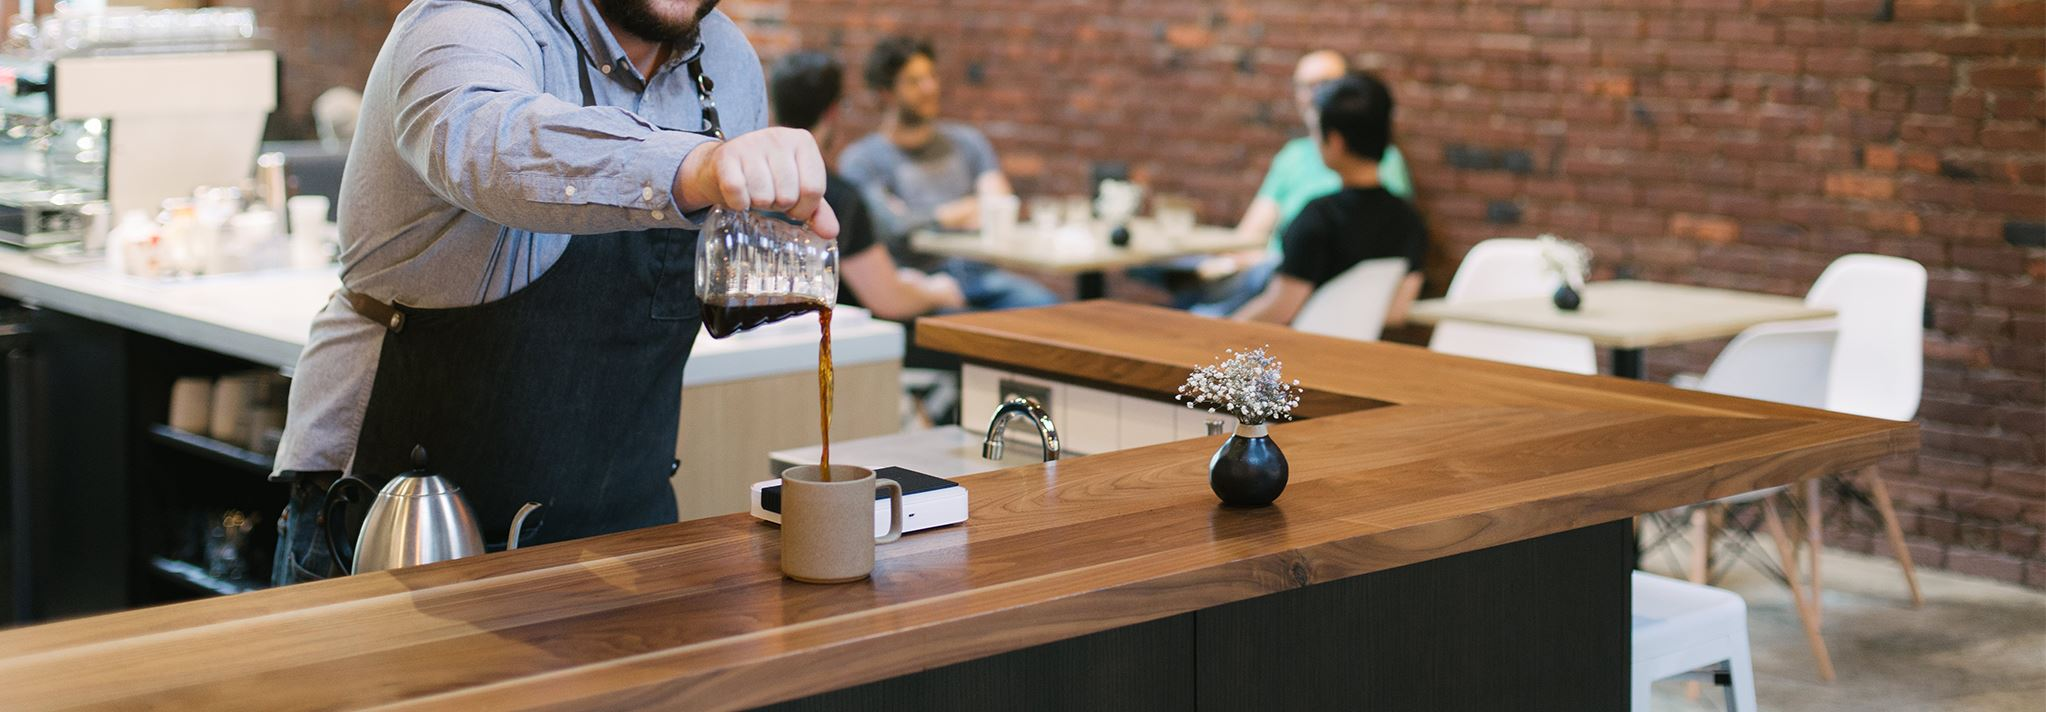 A barista pours coffee at Narrative Coffee